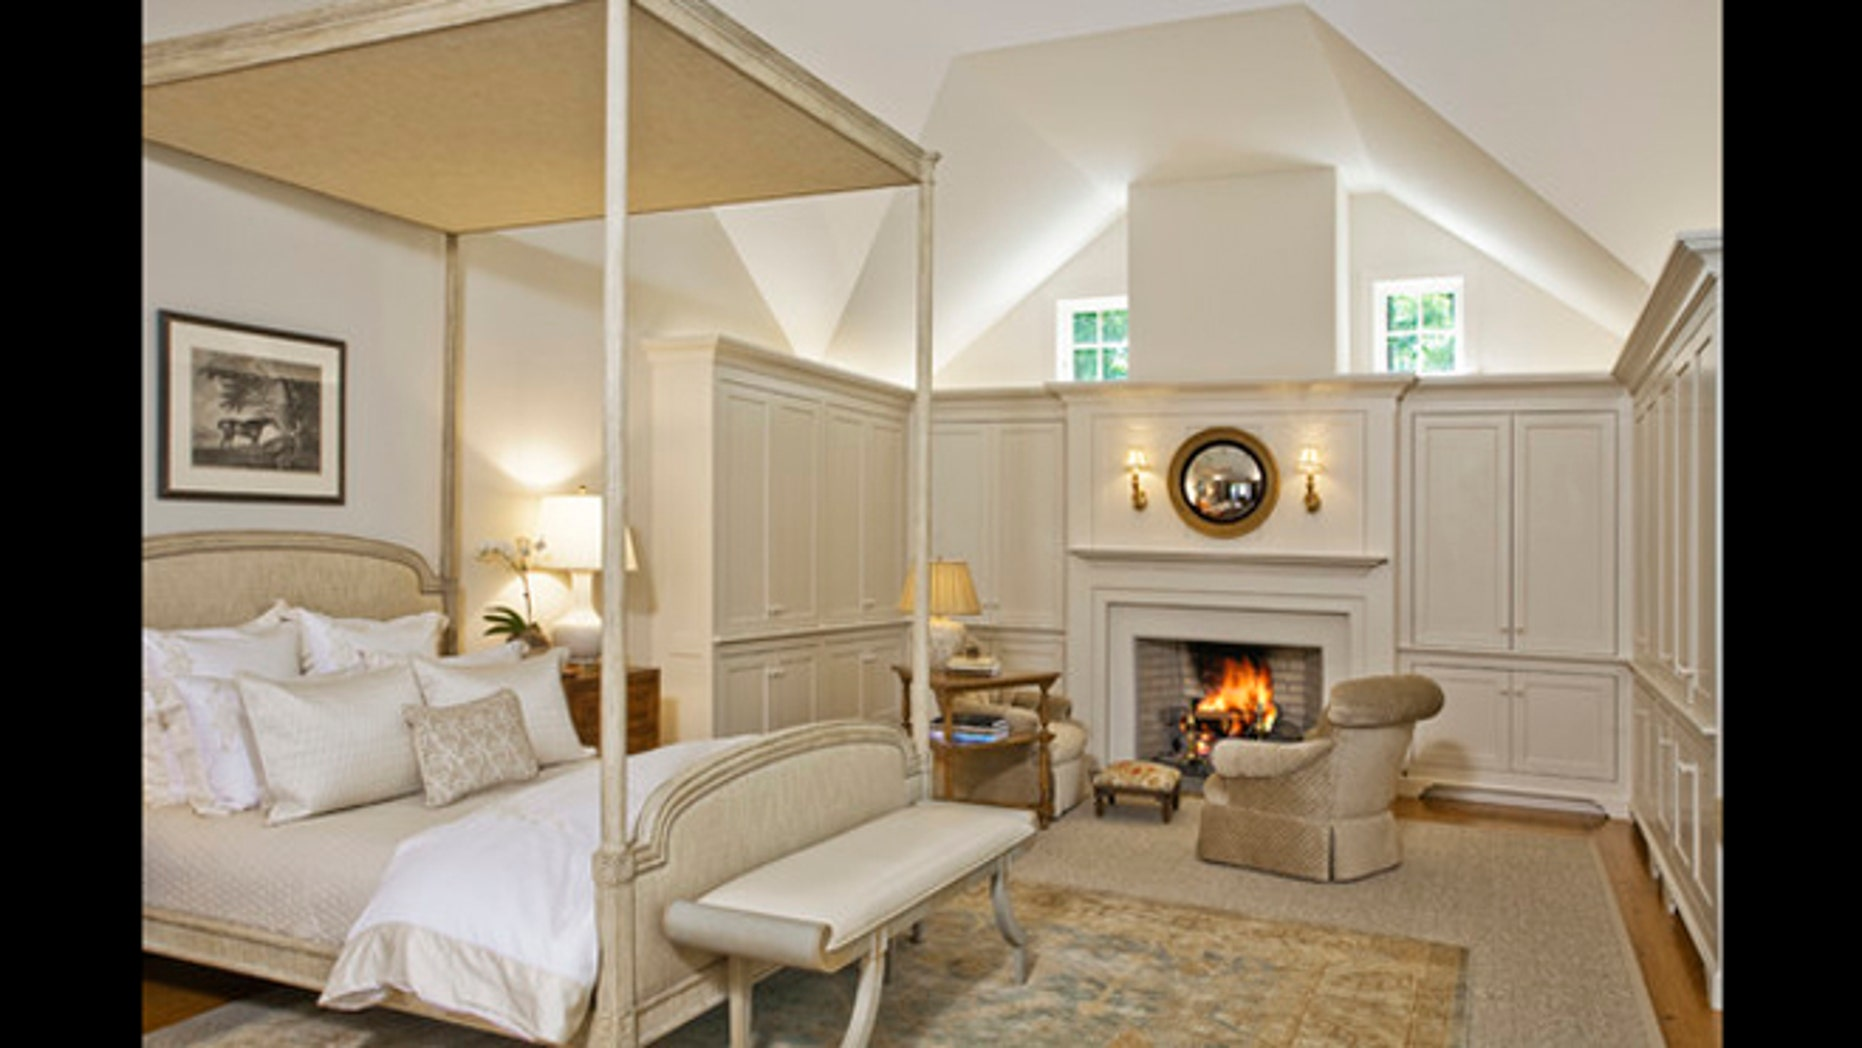 8 Fireplace designs for a radiant master bedroom | Fox News